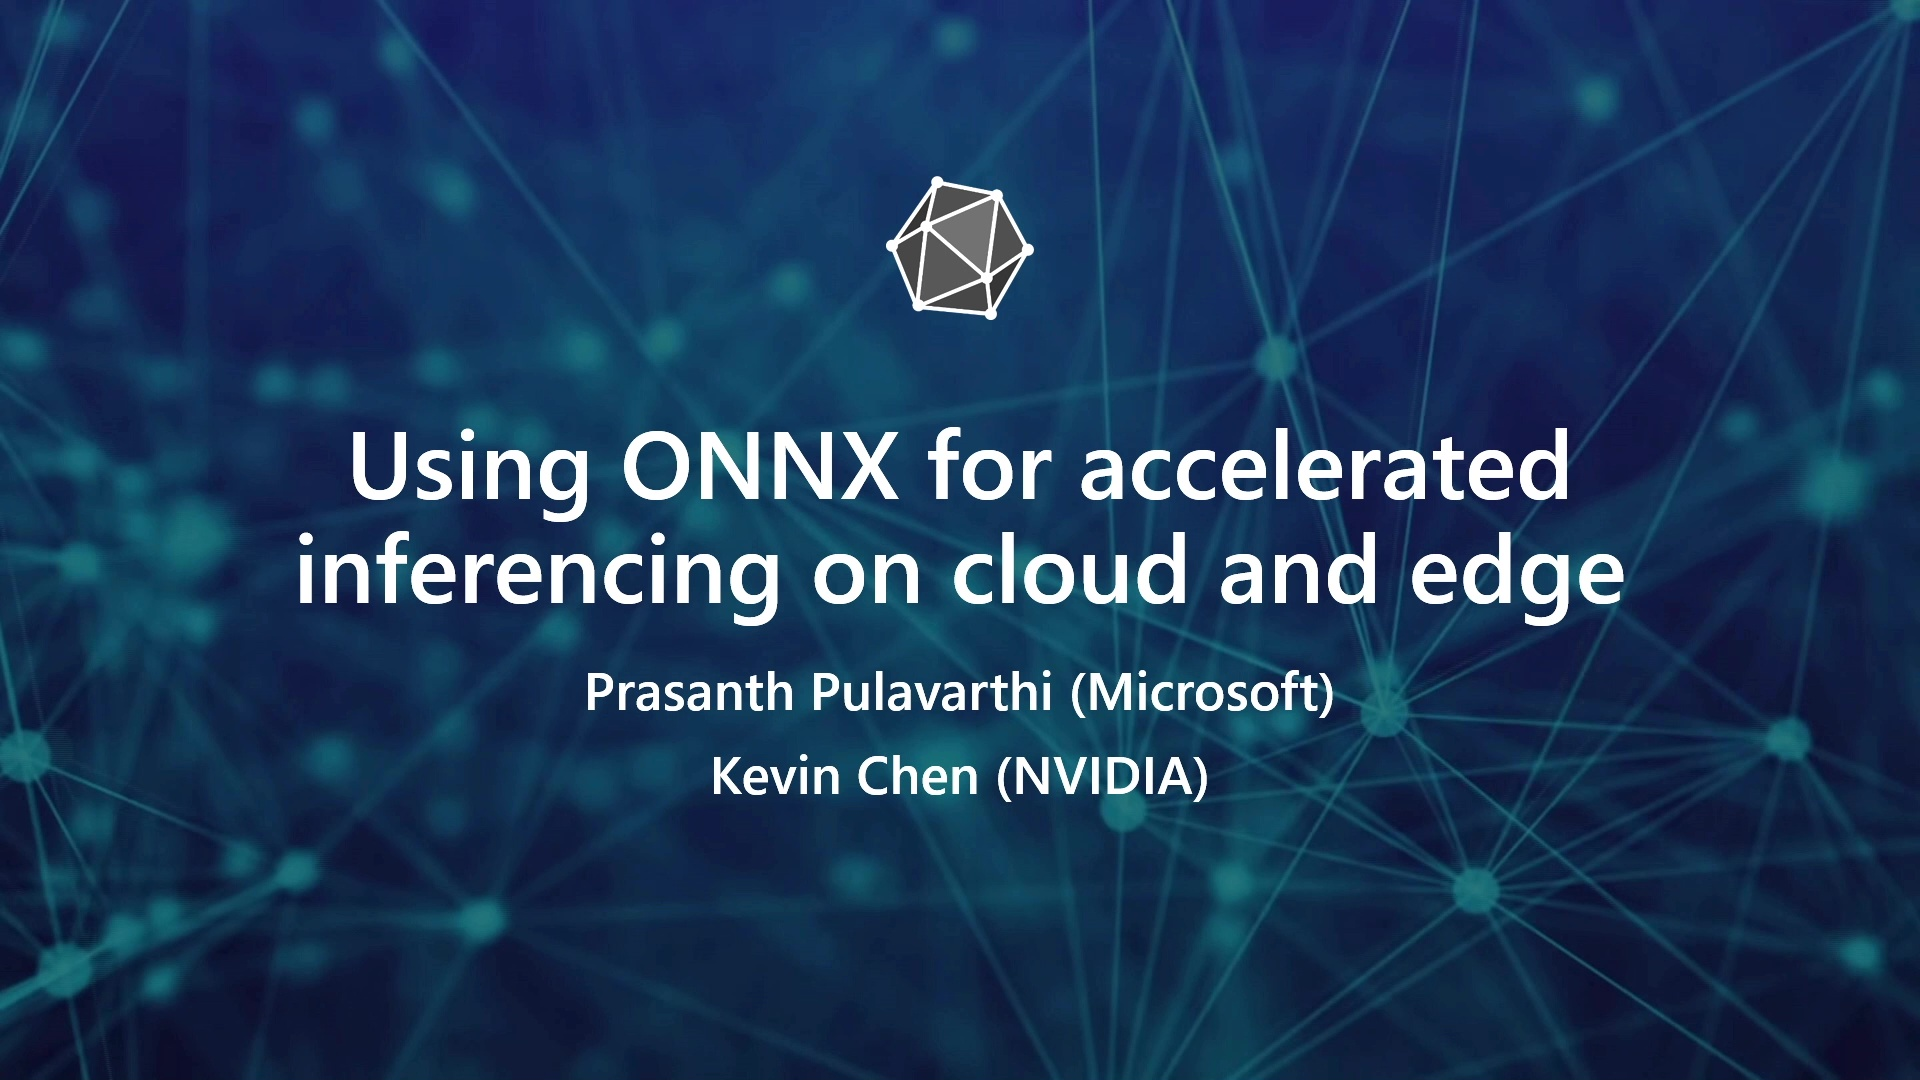 GTC Silicon Valley-2019: Using ONNX for Accelerated